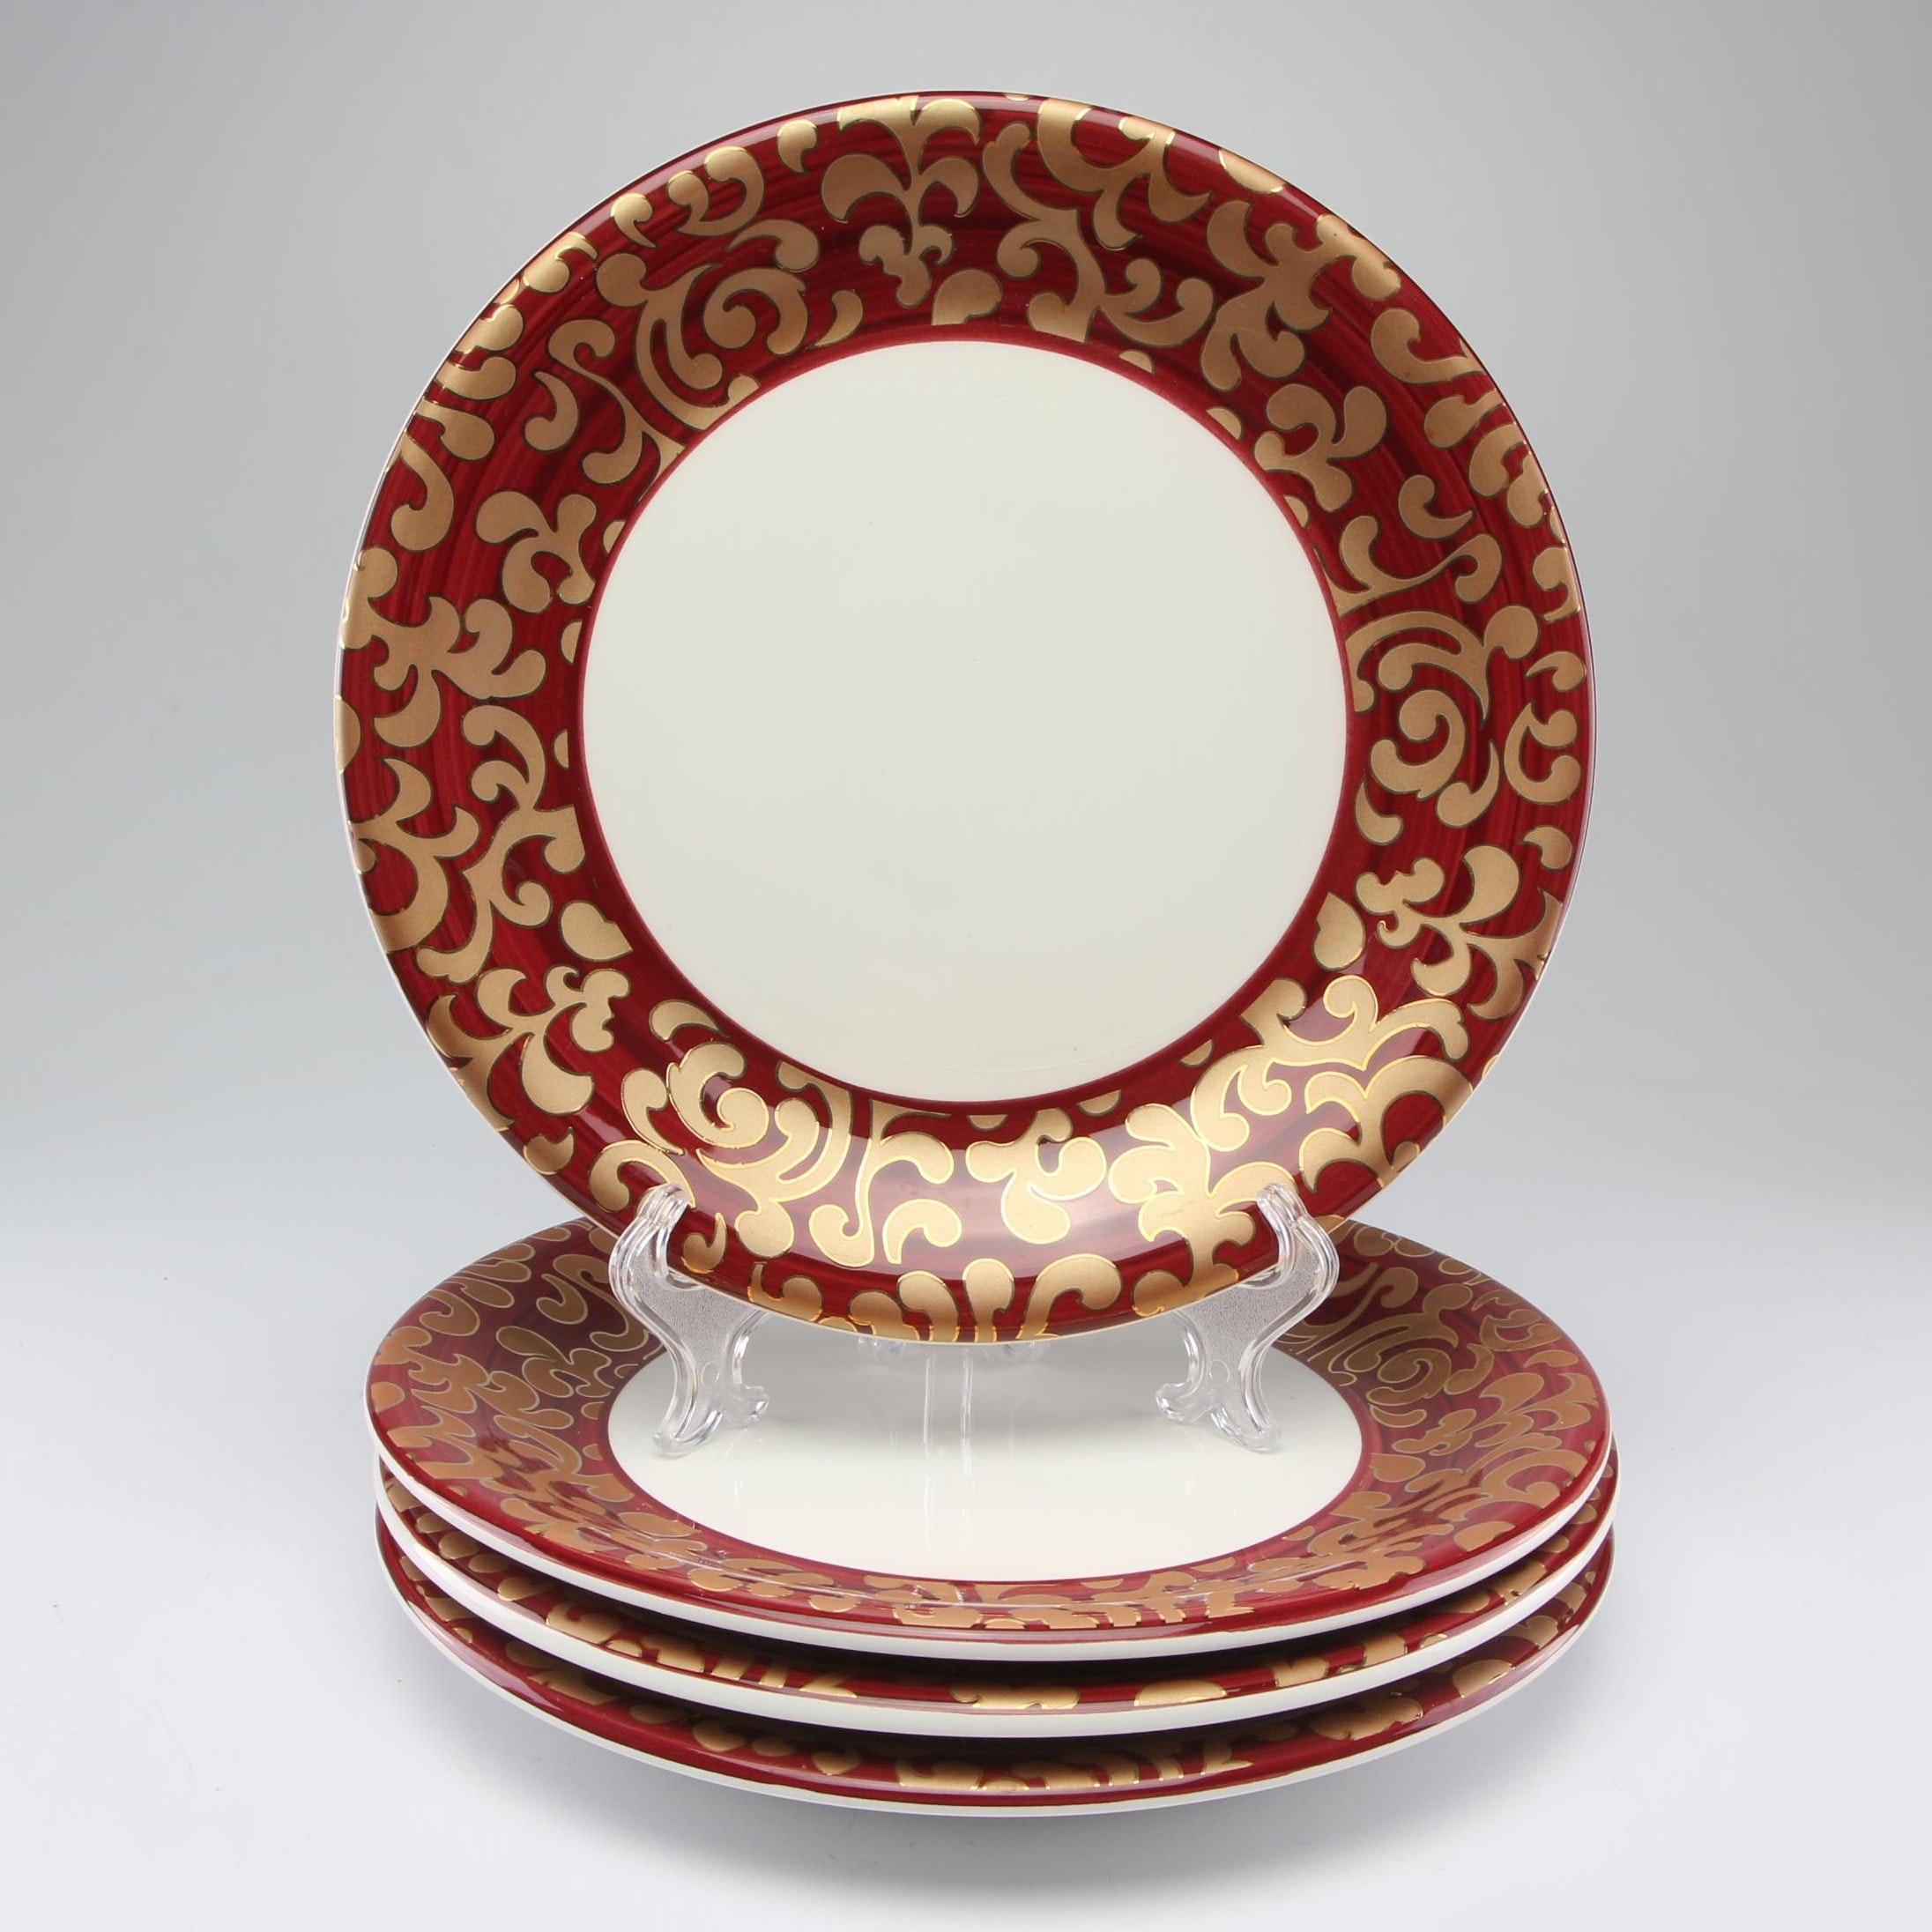 F. Giorgi by Ceramica Holiday Charger Plates